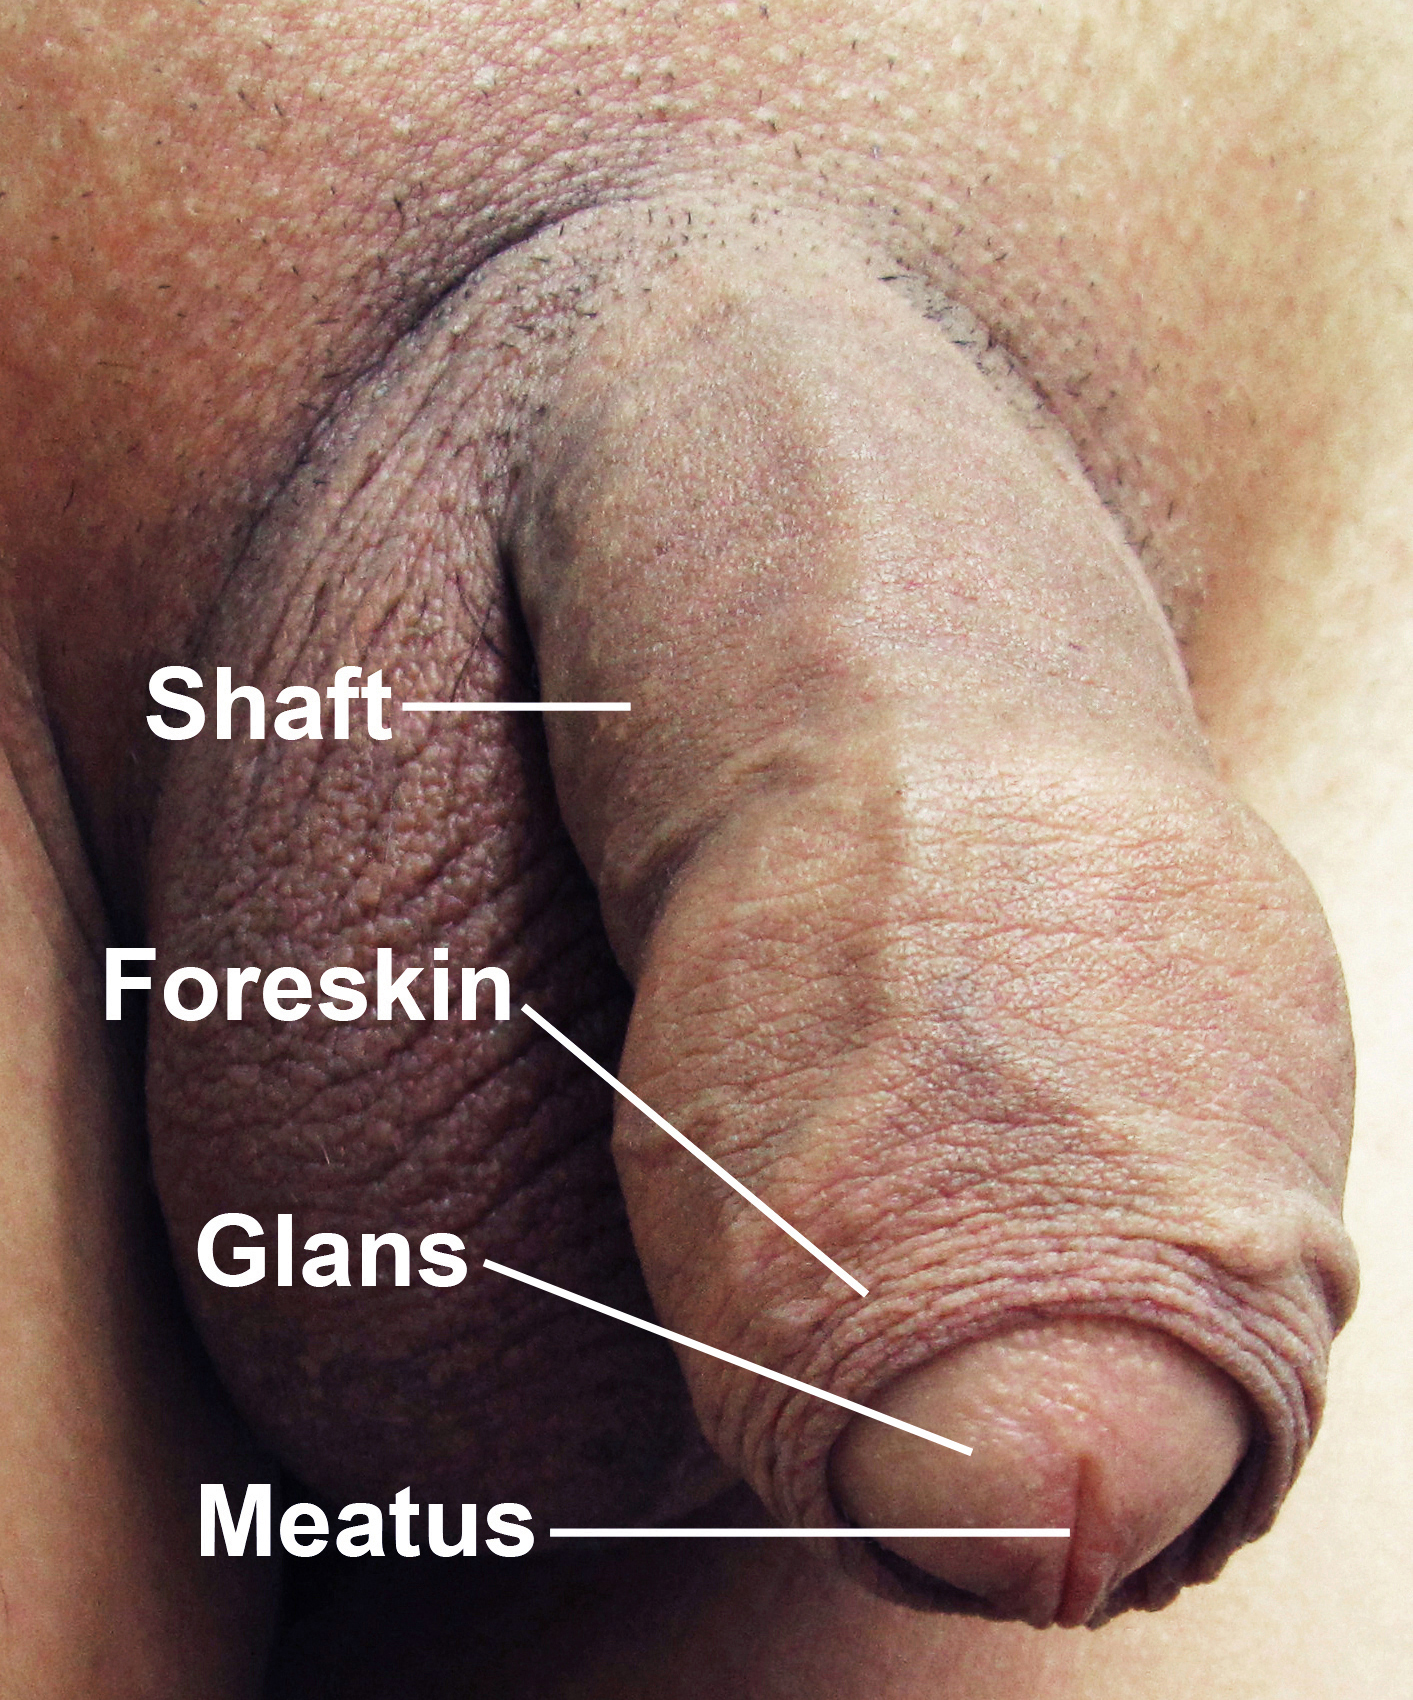 Sexual intercourse the anatomy of